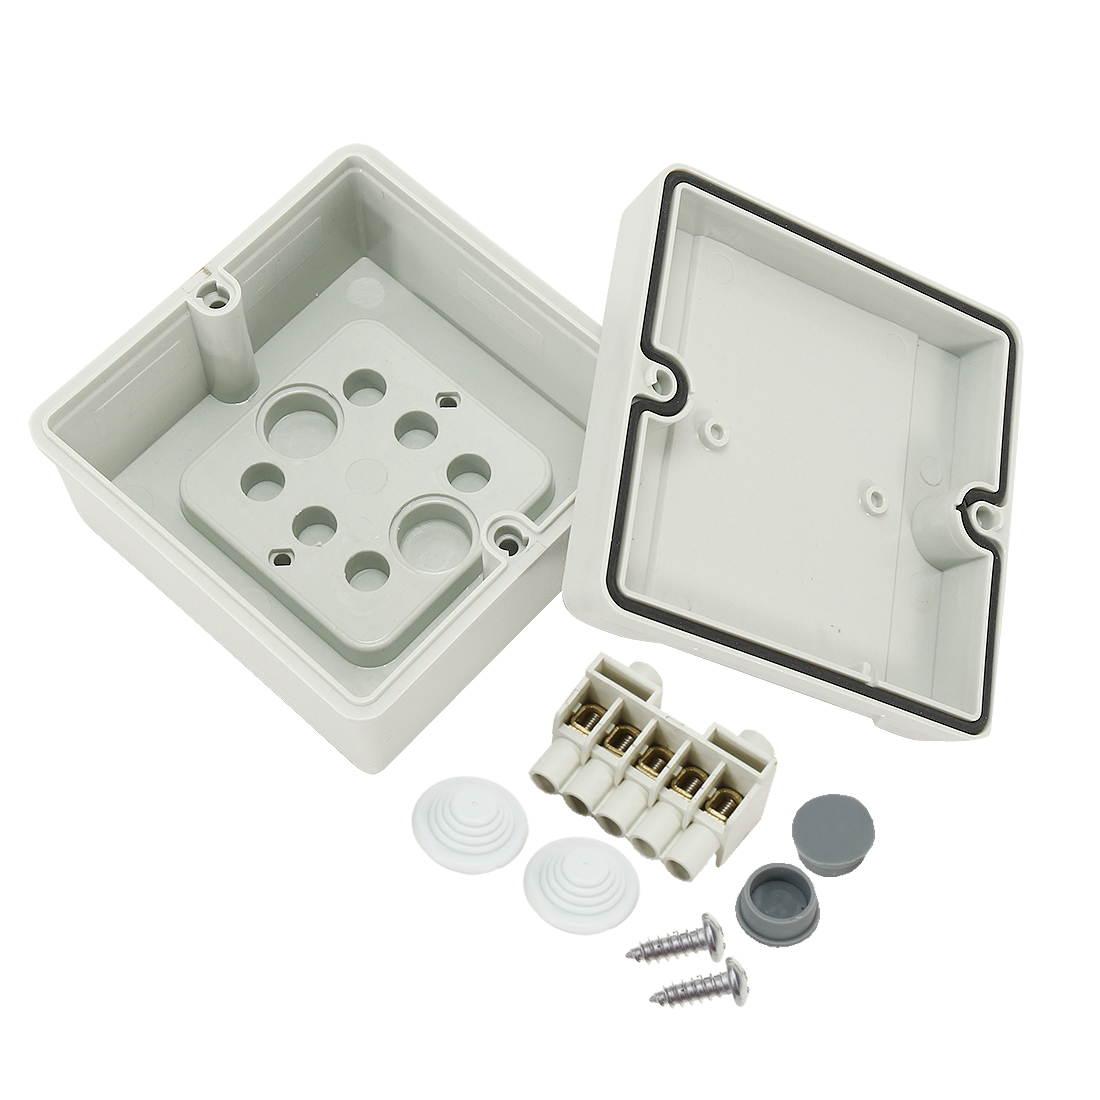 "3.5""x3.5""x2.1""(88mmx88mmx53mm) ABS Flame Retardant Dustproof IP66 Junction Box Universal Project Enclosure w 5Terminal"